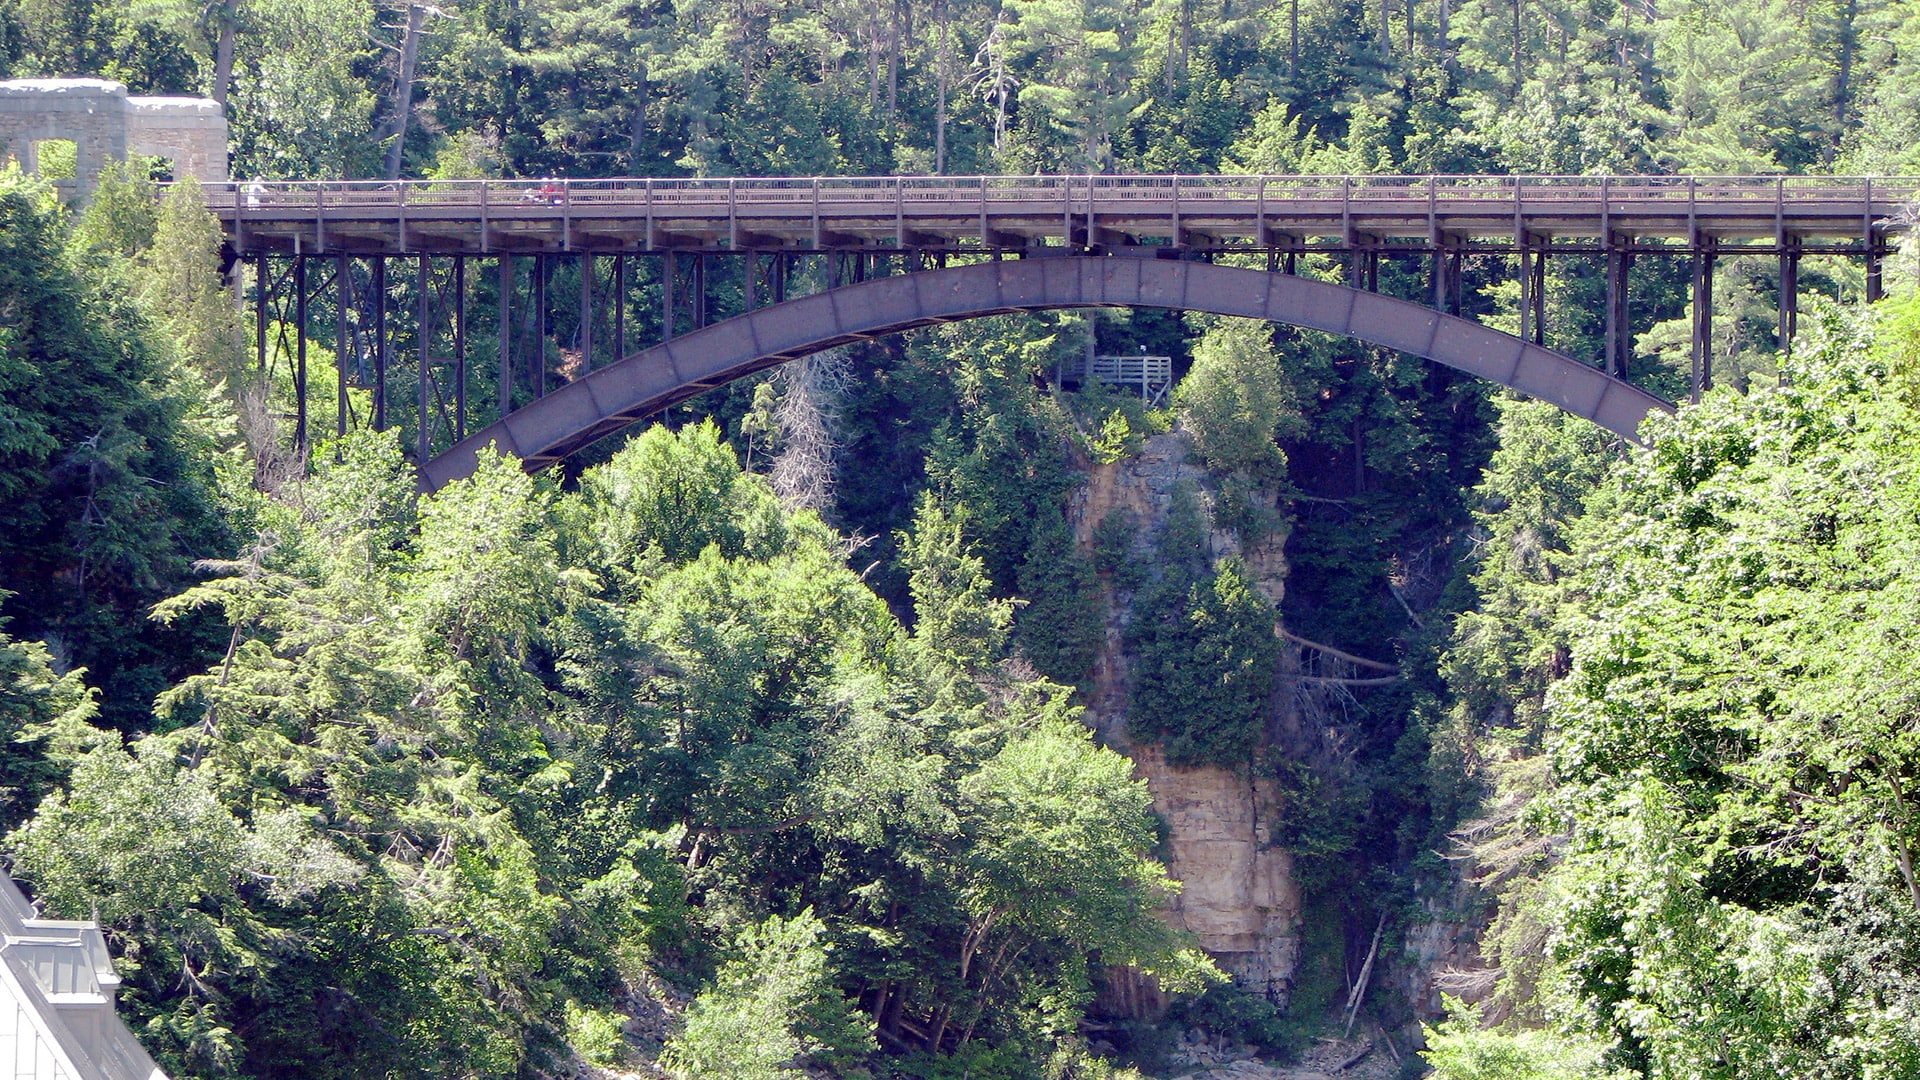 https://upload.wikimedia.org/wikipedia/commons/3/31/Bridge_over_the_Ausable_Chasm,_Clinton_County,_New_York.jpg